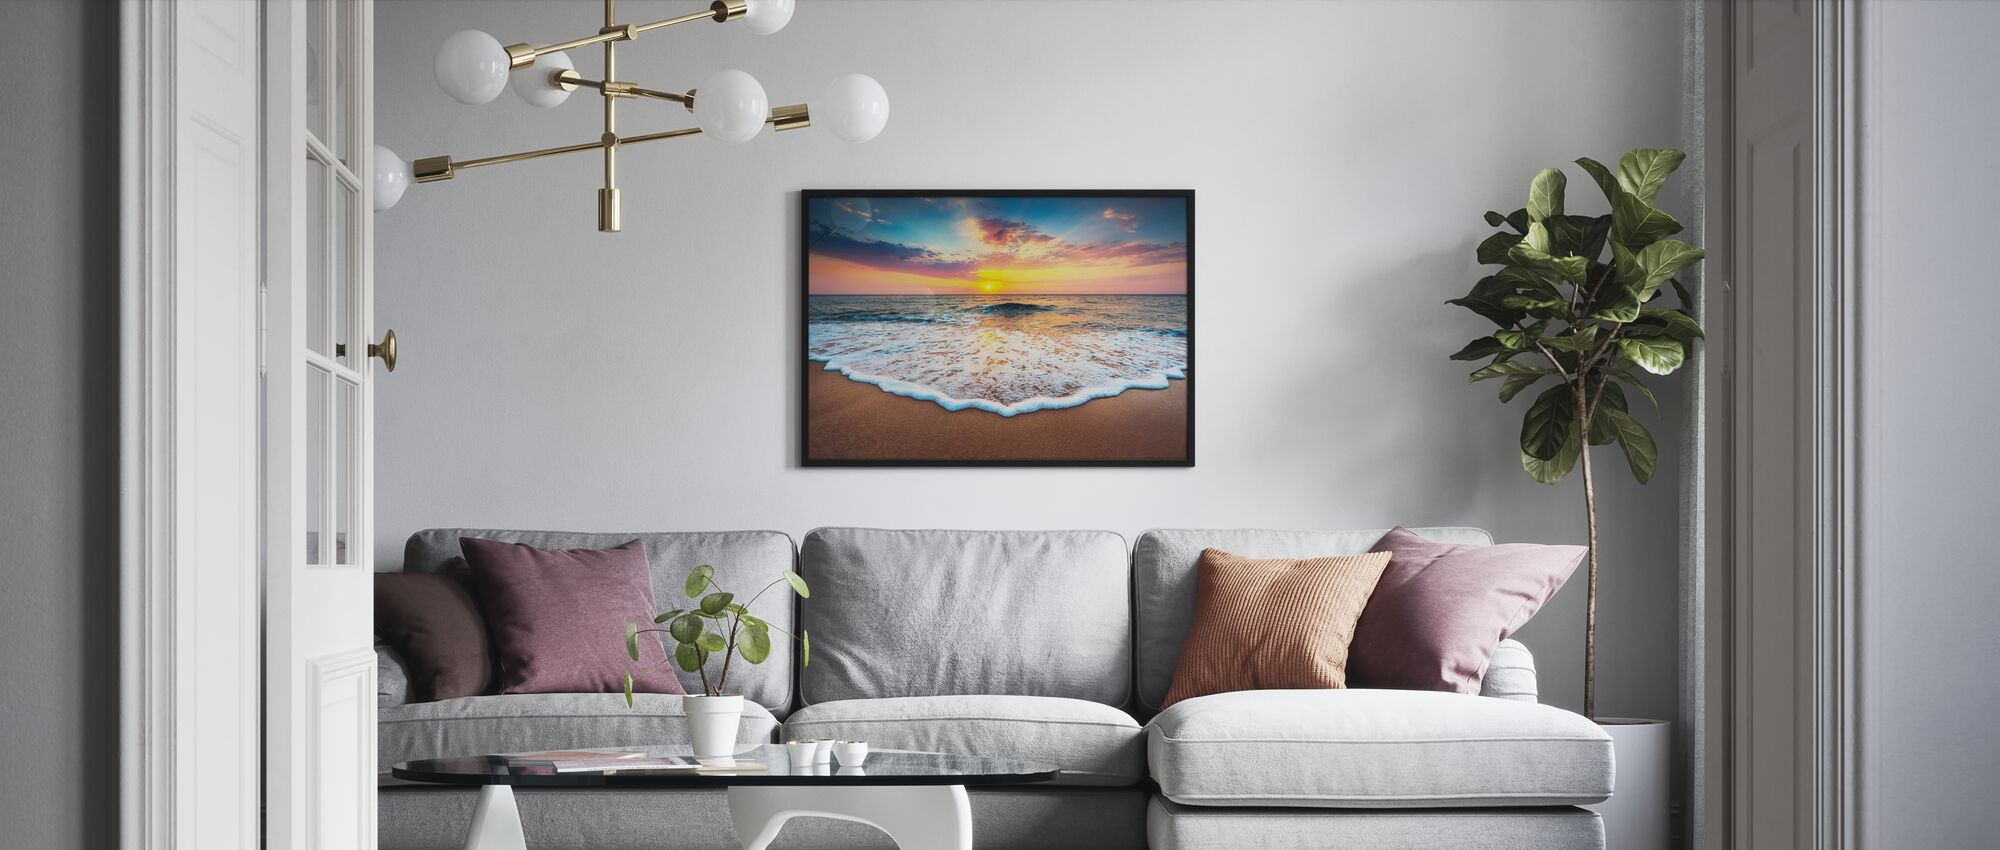 Sunrise and Dreams - Poster - Living Room